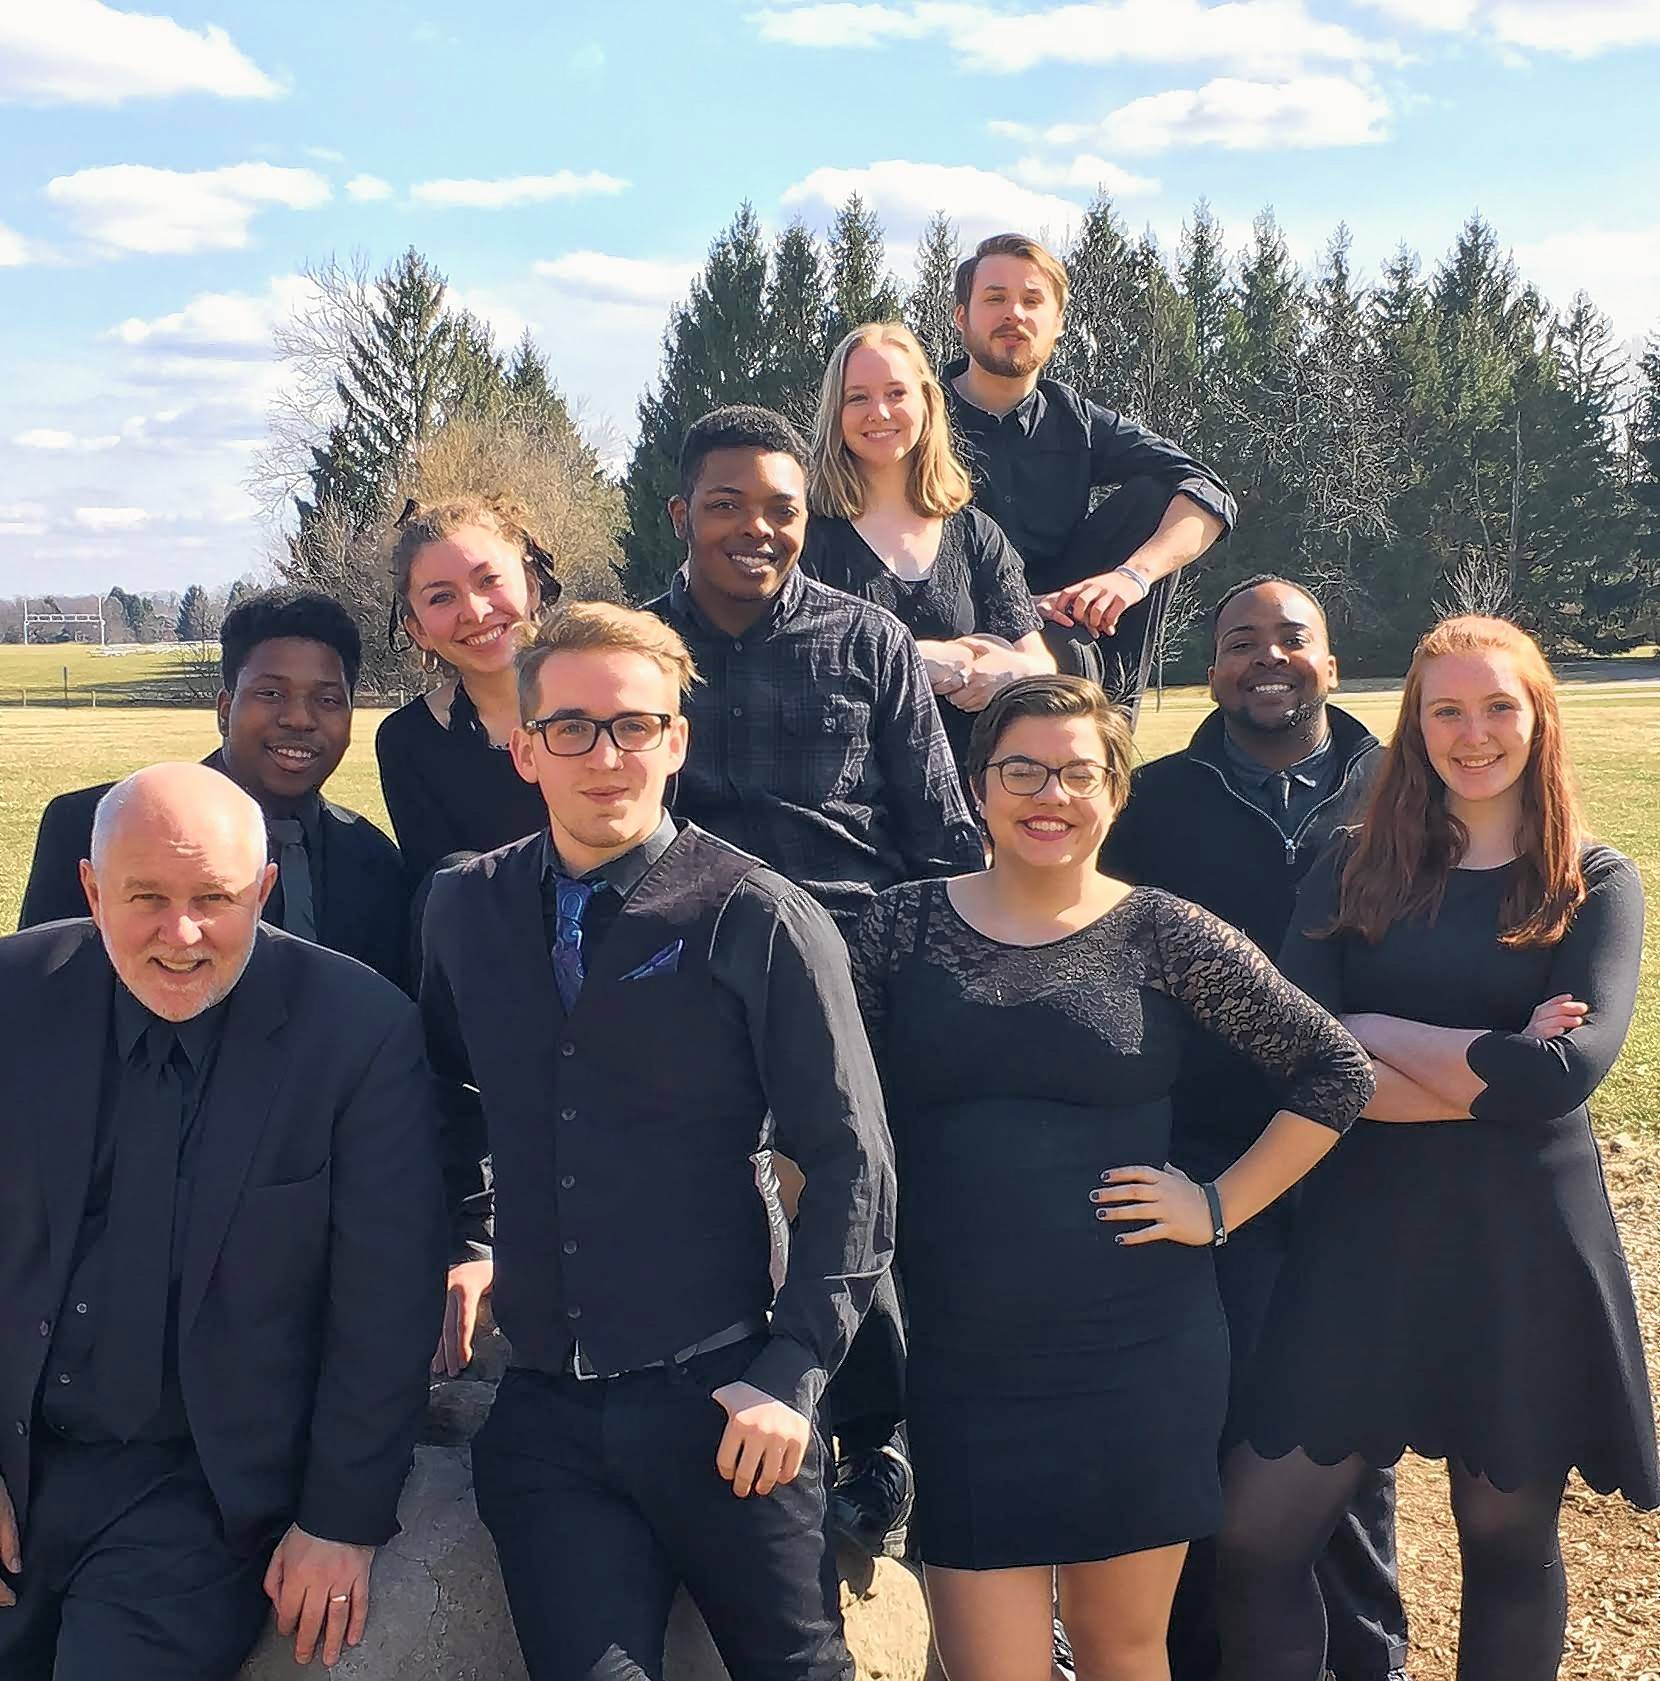 The Briton Singers from Albion College in Michigan will perform at the next Highland Coffeehouse on Friday, March 1.